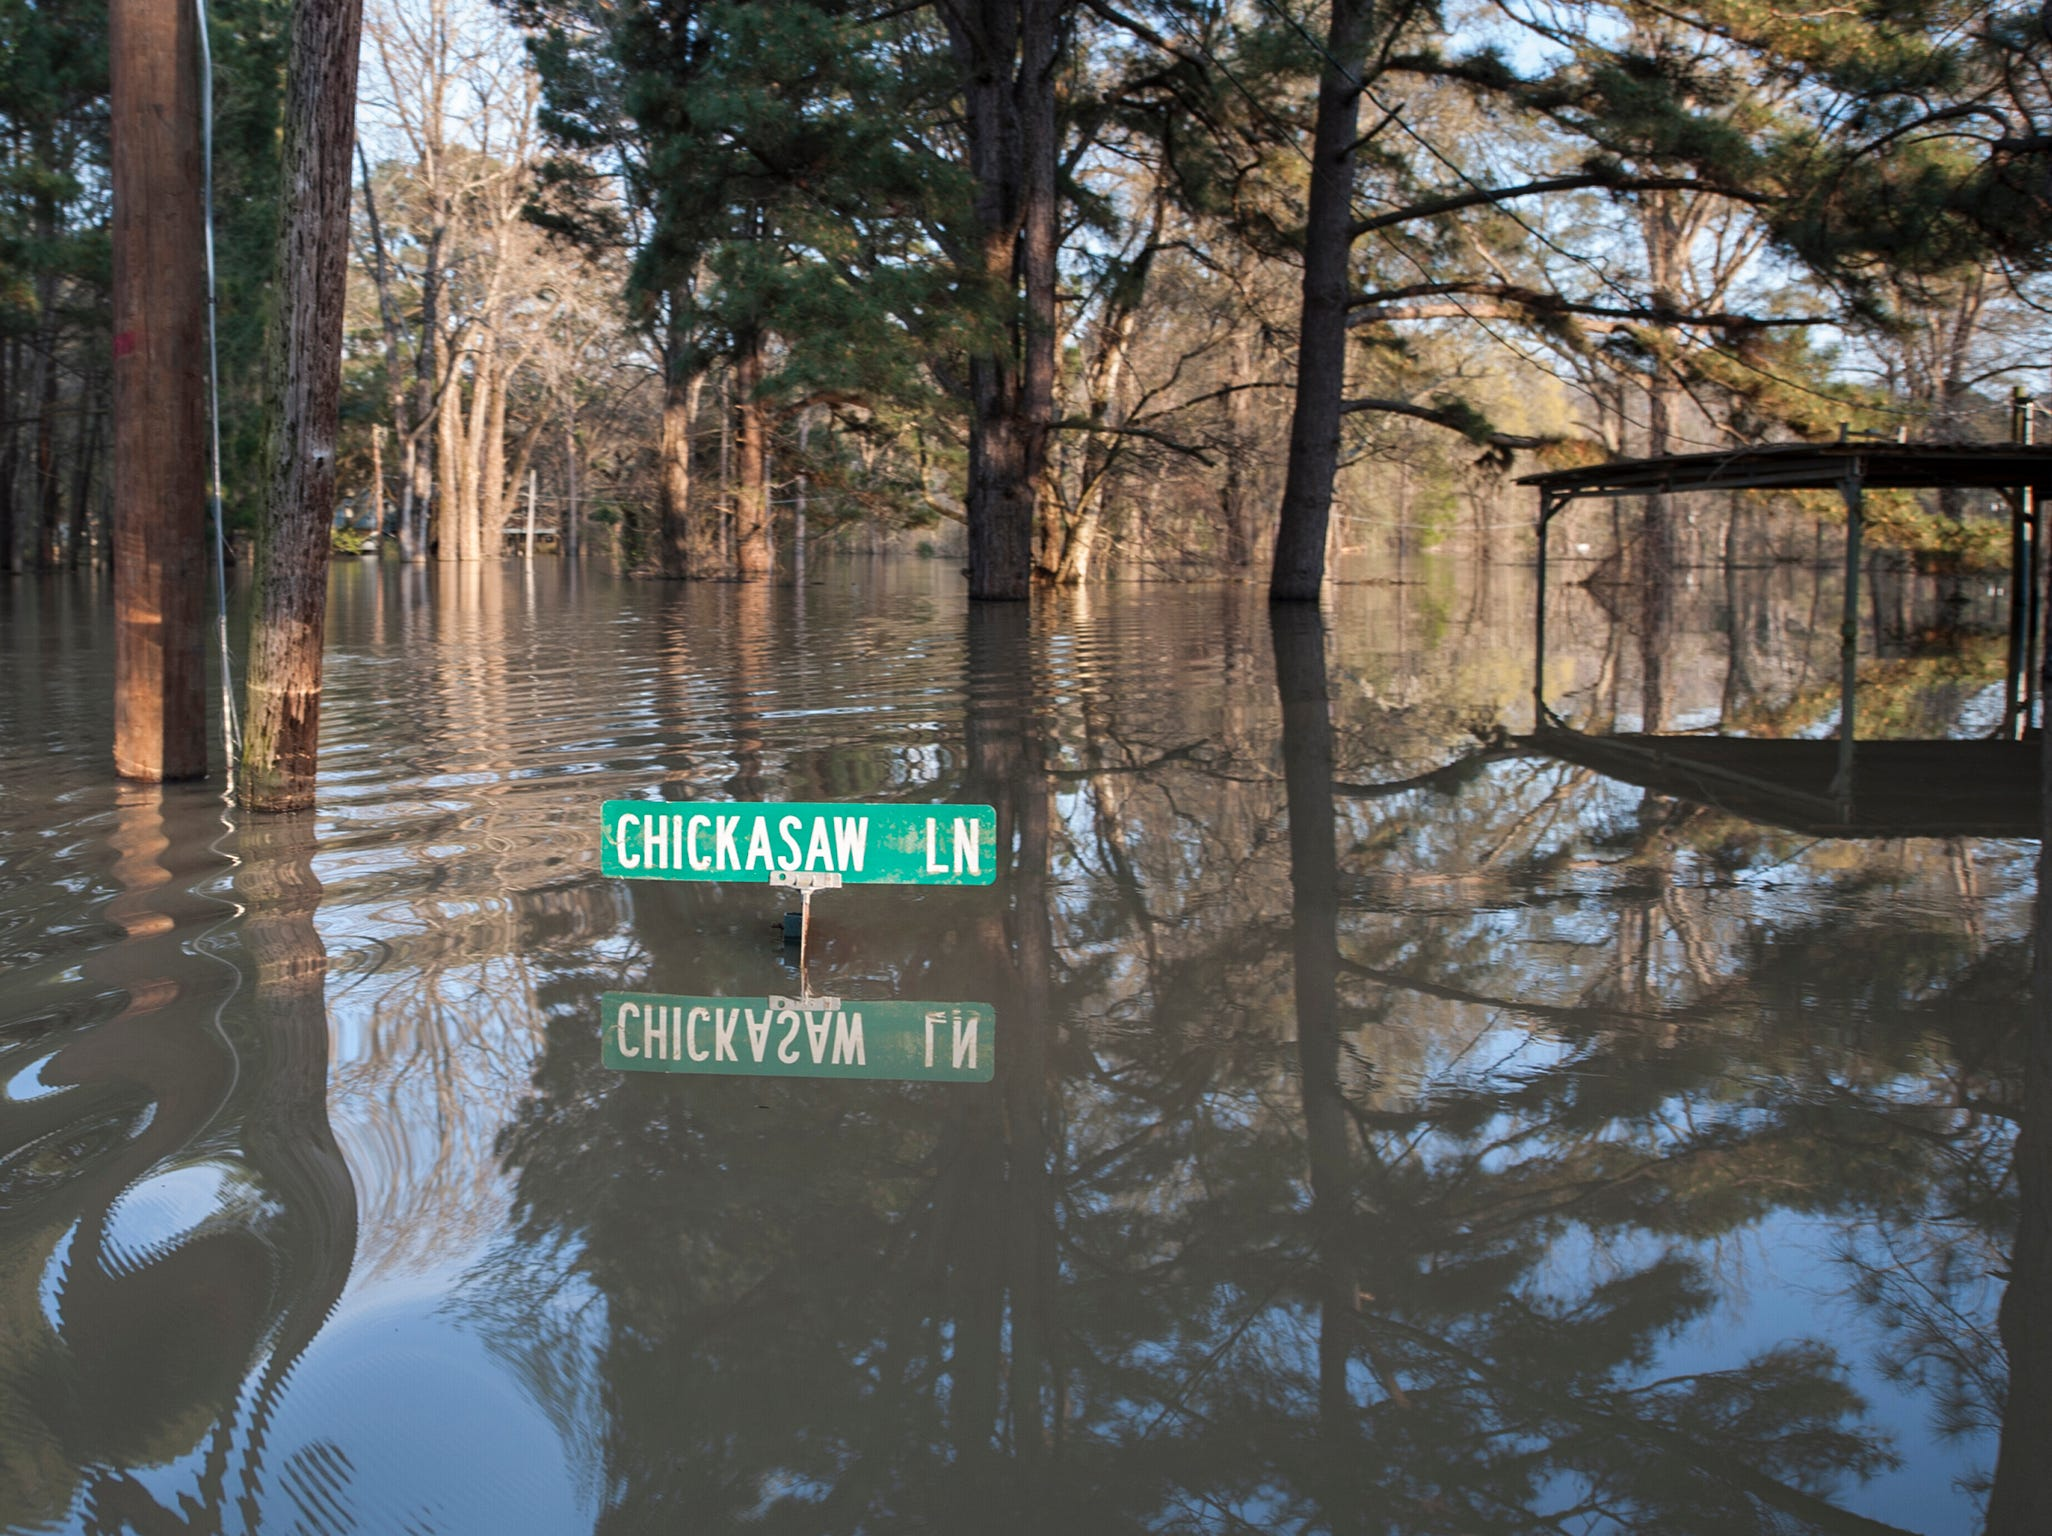 The sign indicating the intersection of Chickasaw Lane and Chickasaw Drive is barely above water in a Vicksburg neighborhood that has, way too often, seen flood damage from the Yazoo River.